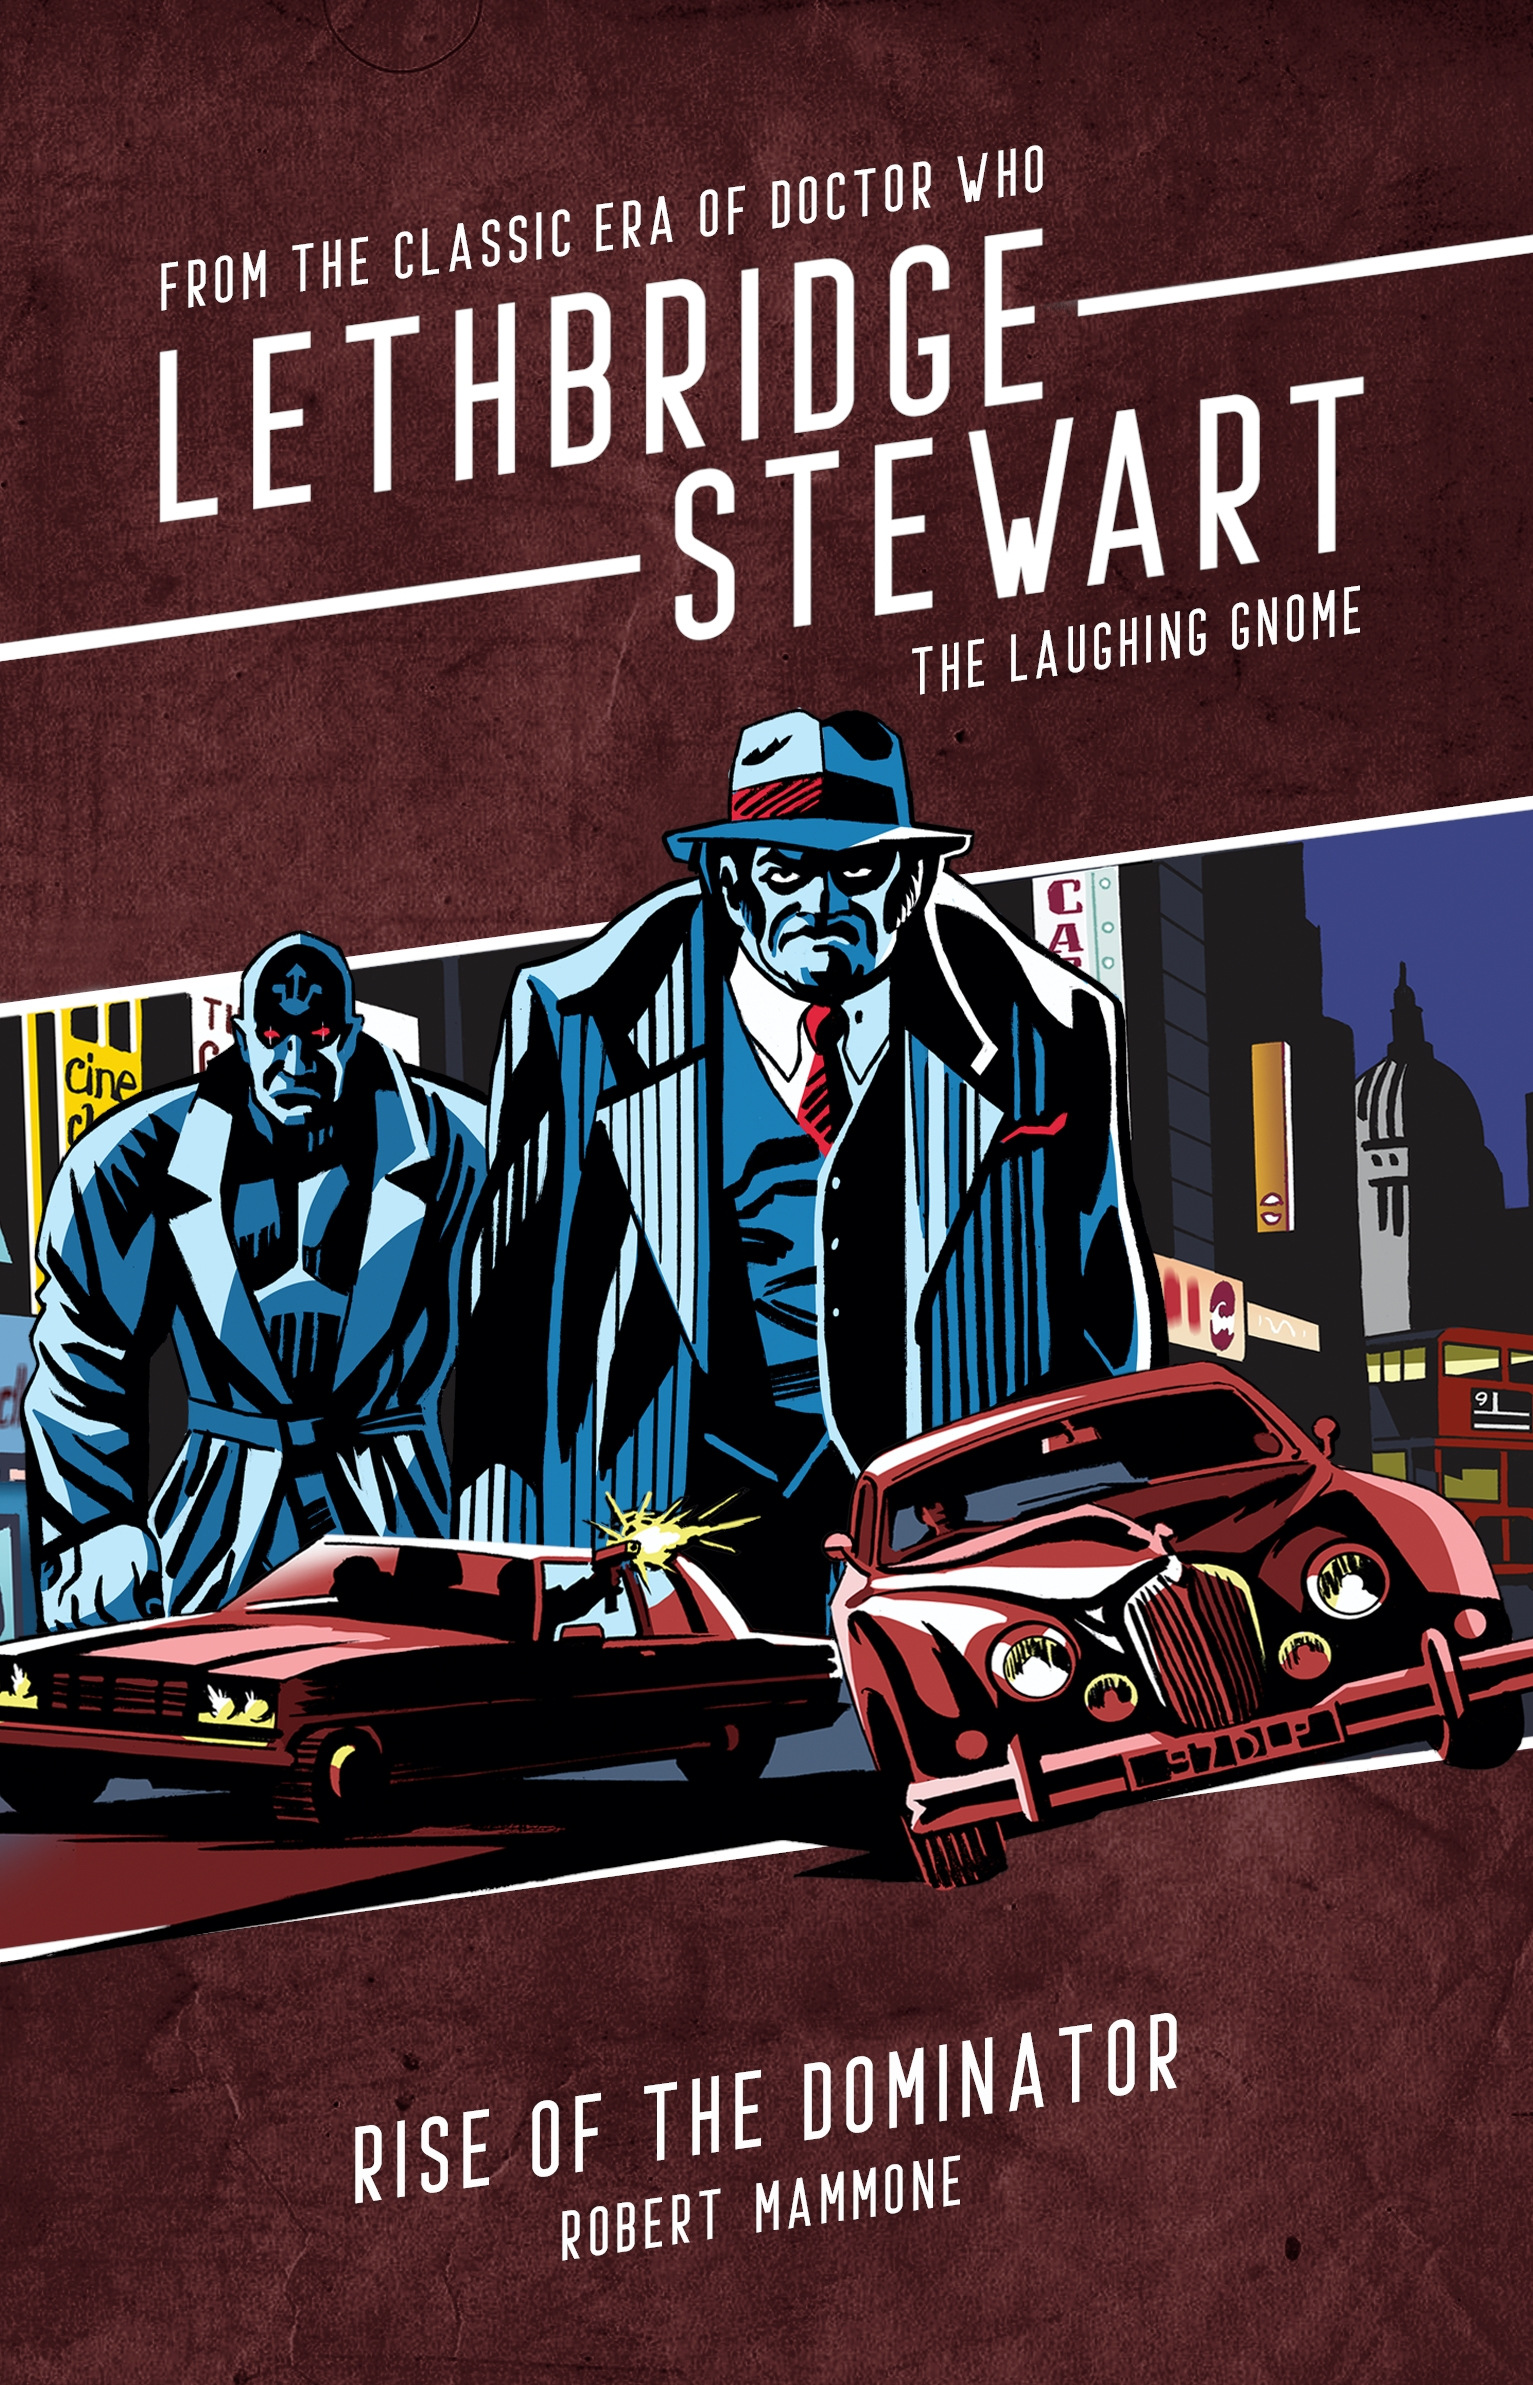 Lethbridge-Stewart: The Laughing Gnome: Rise of the Dominator (Credit: Candy Jar Books)